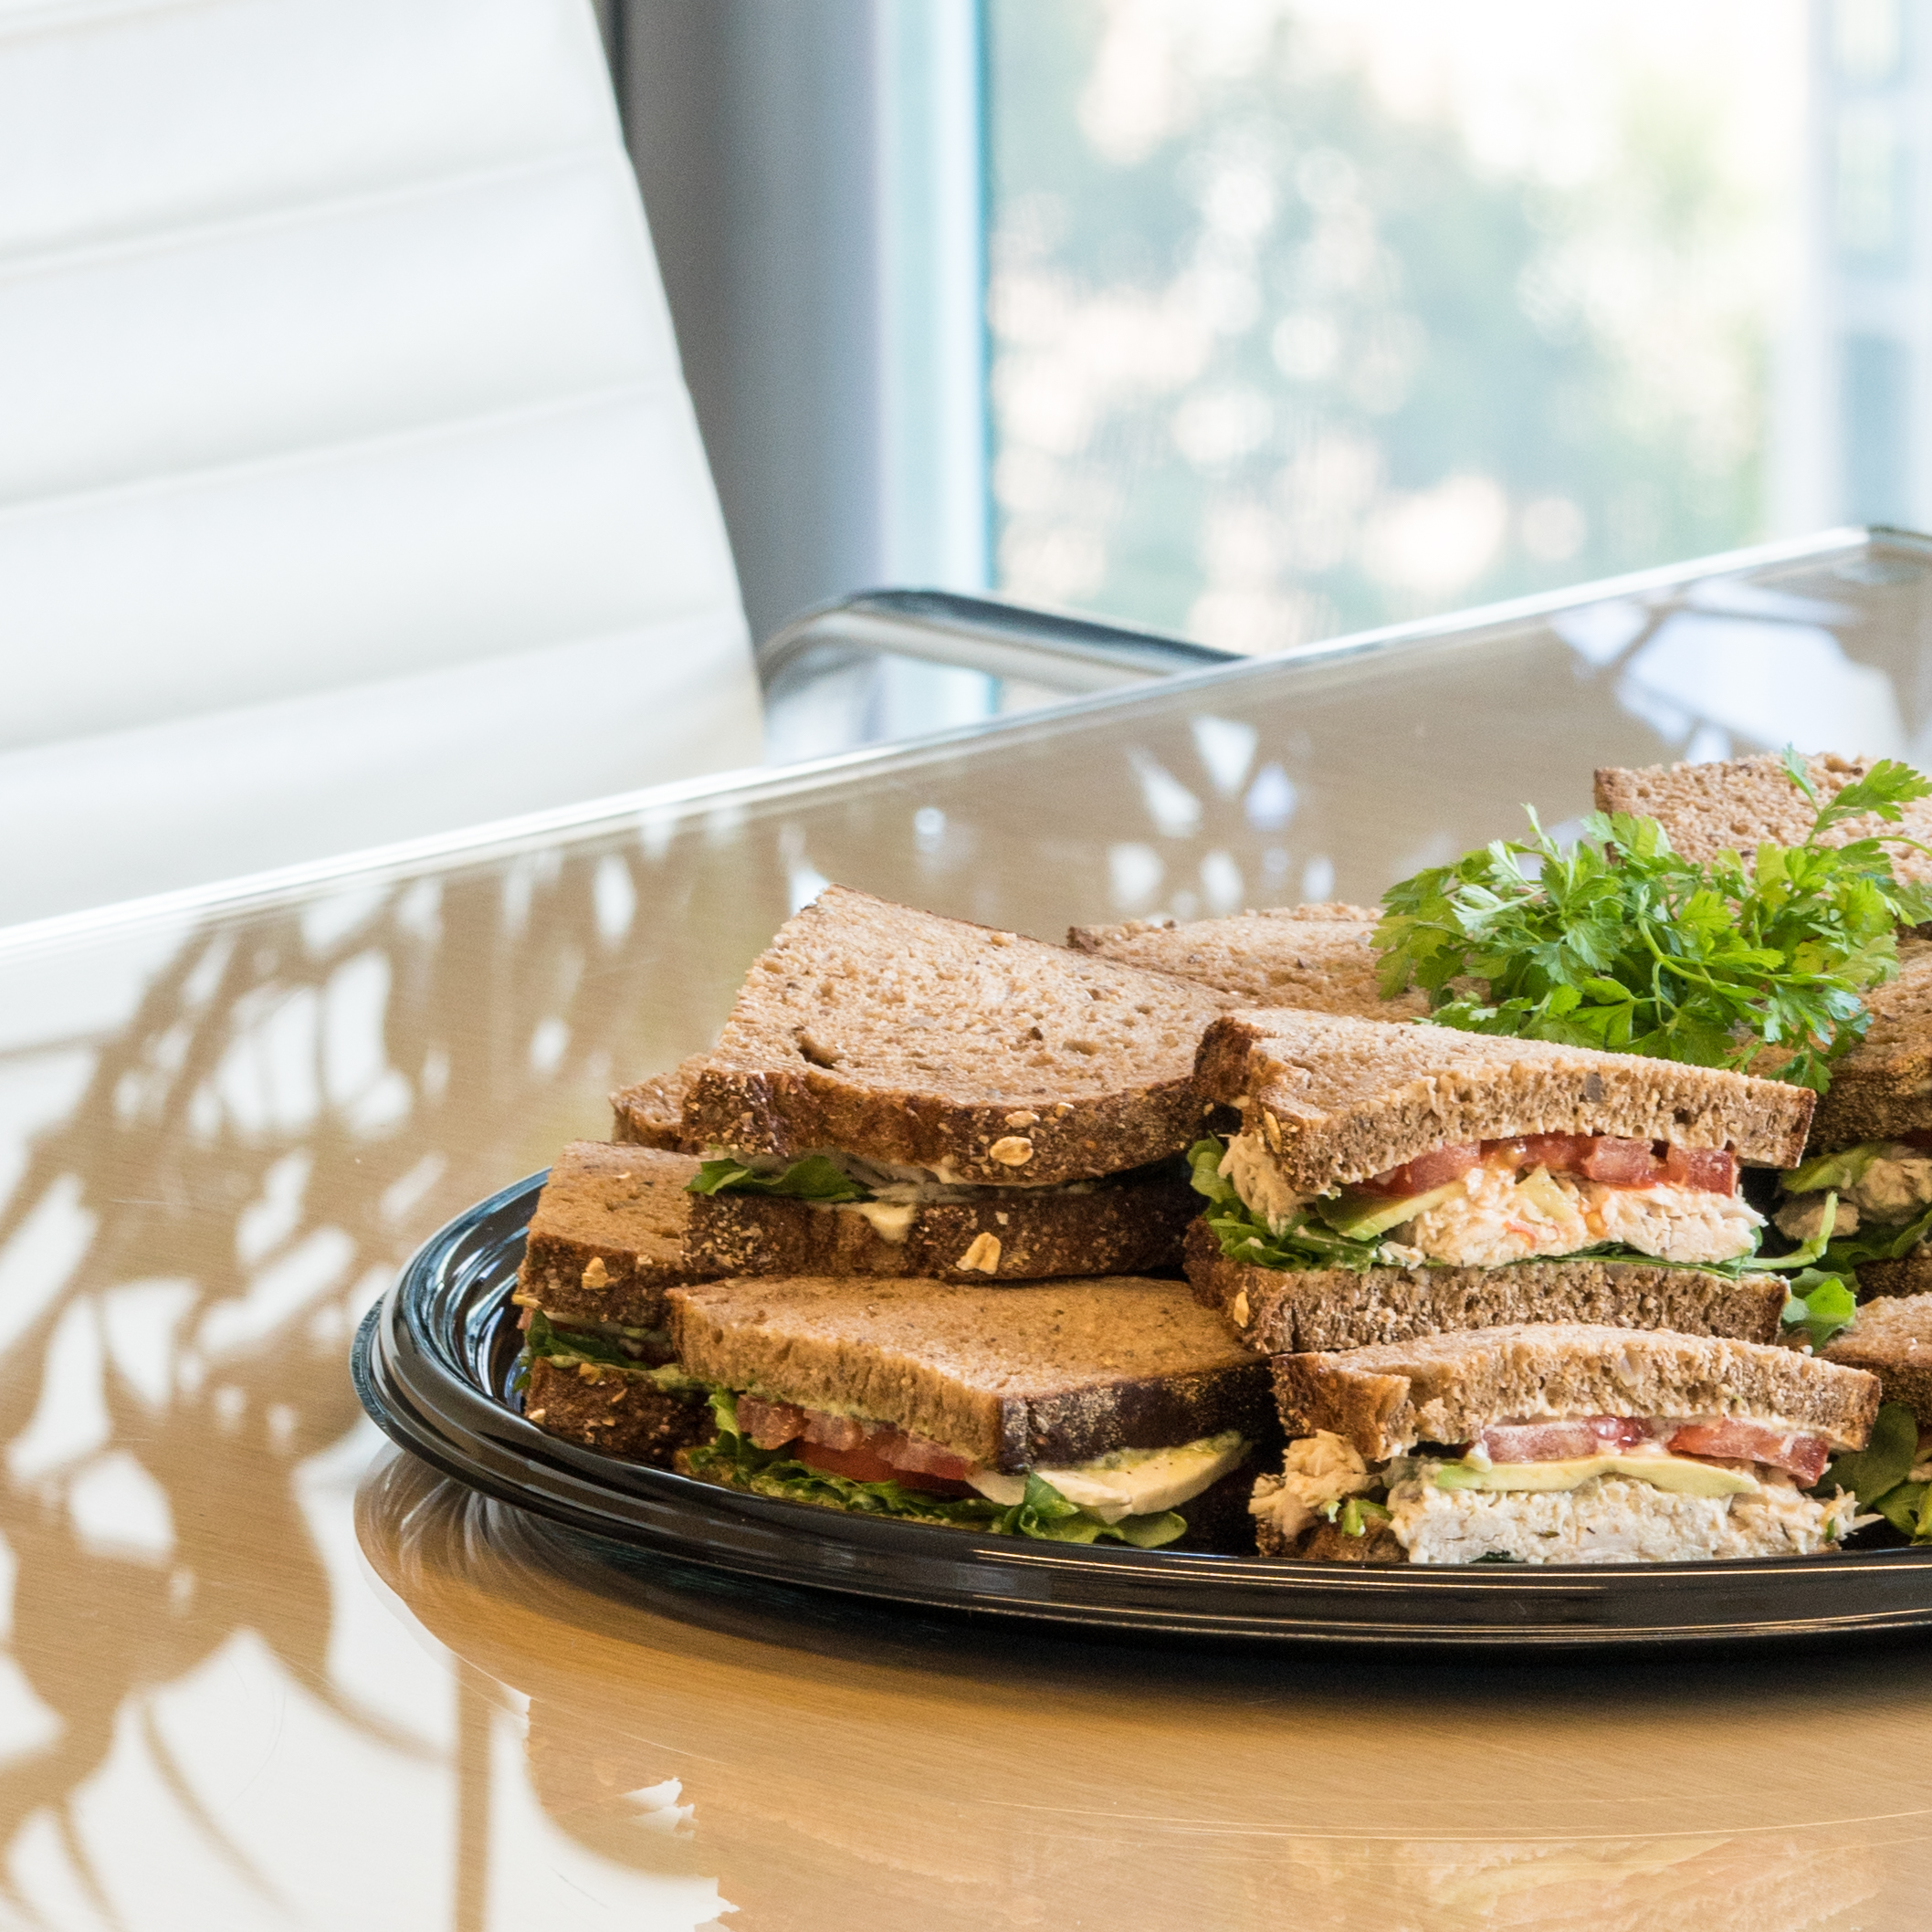 Catering  Enjoy a full selection of ready-to-go meals and sides for your next event or meeting.